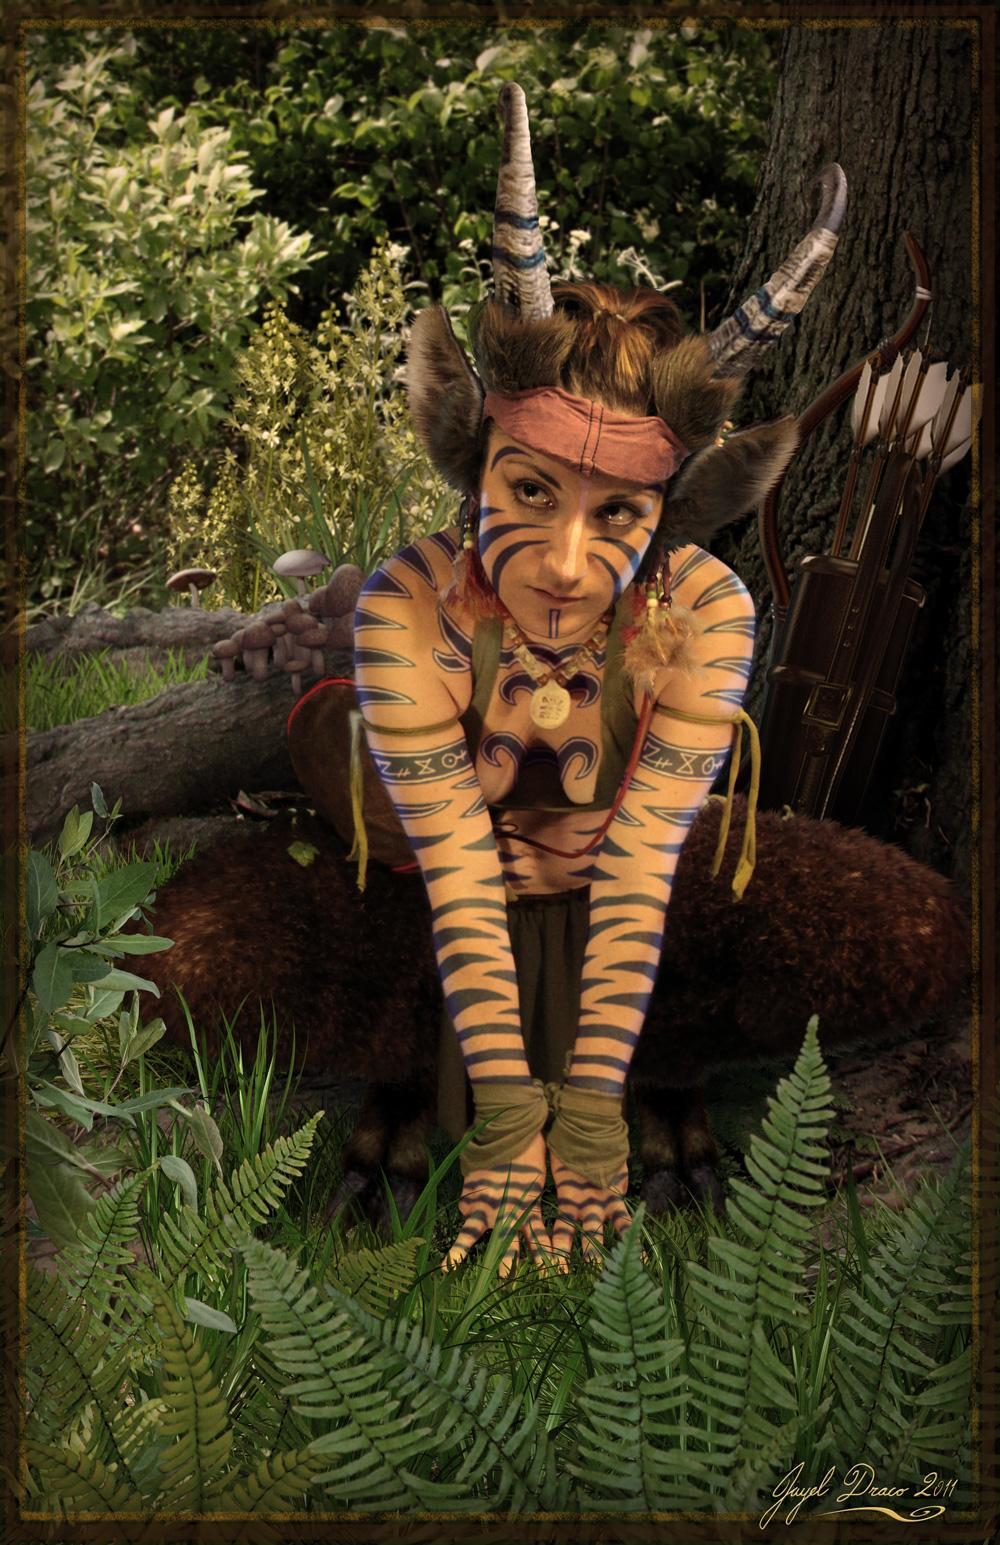 FRANATIA THE FAUN - costume, photography, and photomanipulation by Jayel Draco